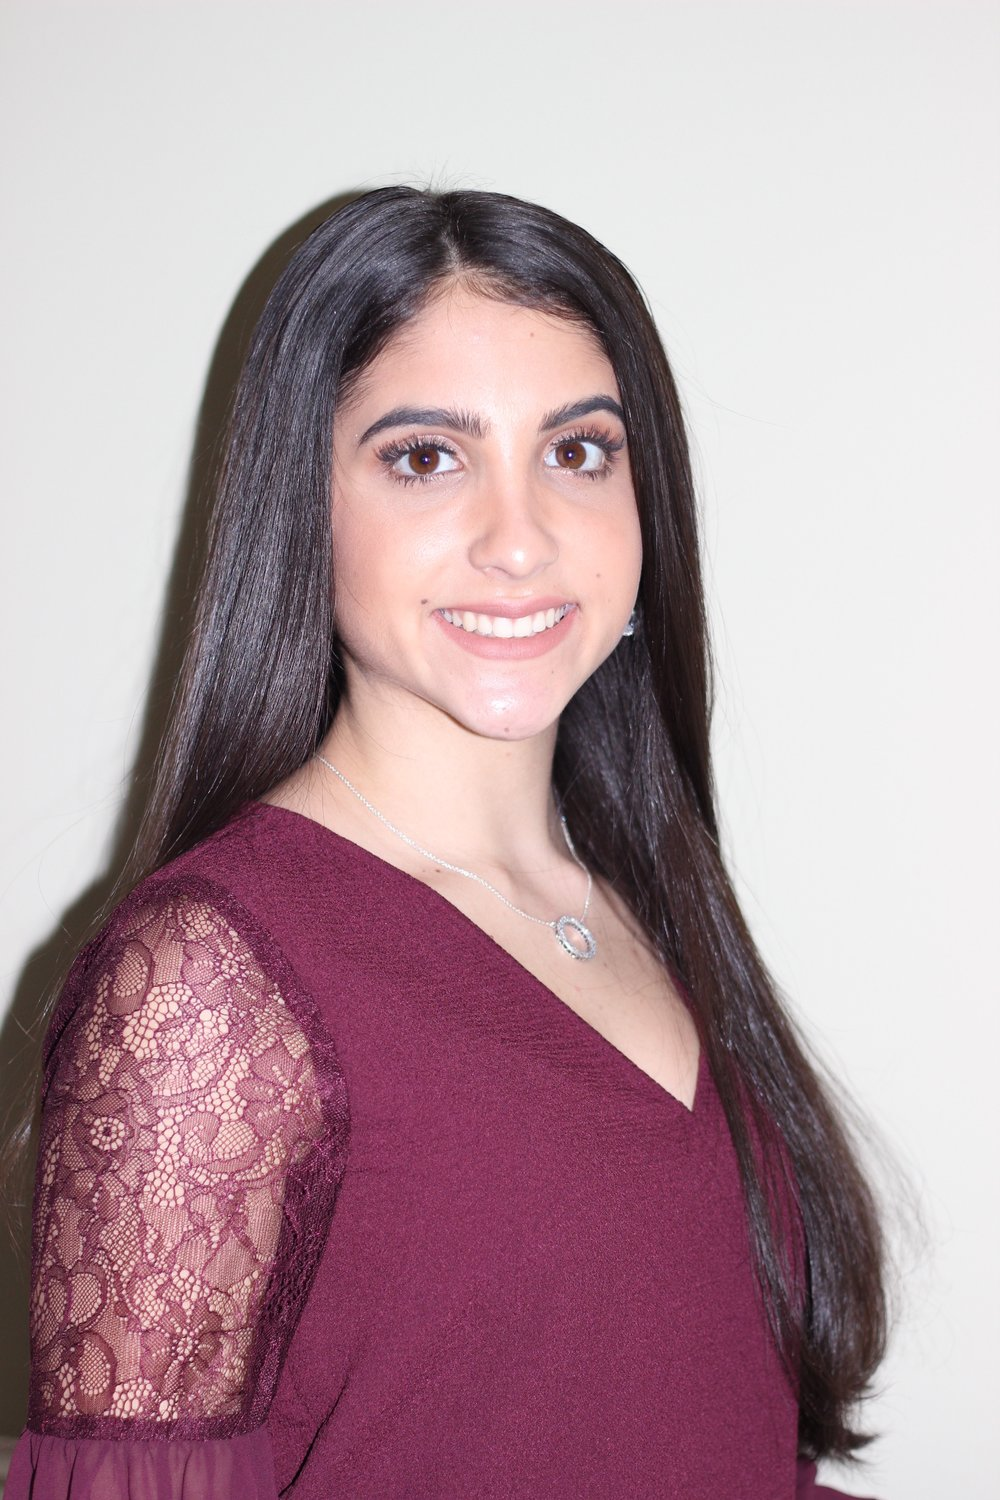 GABRIELLA MARINELLI    At Large Outstanding Teen   Talent:     Jazz Dance   Platform:    No Restrictions on Your Ambitions